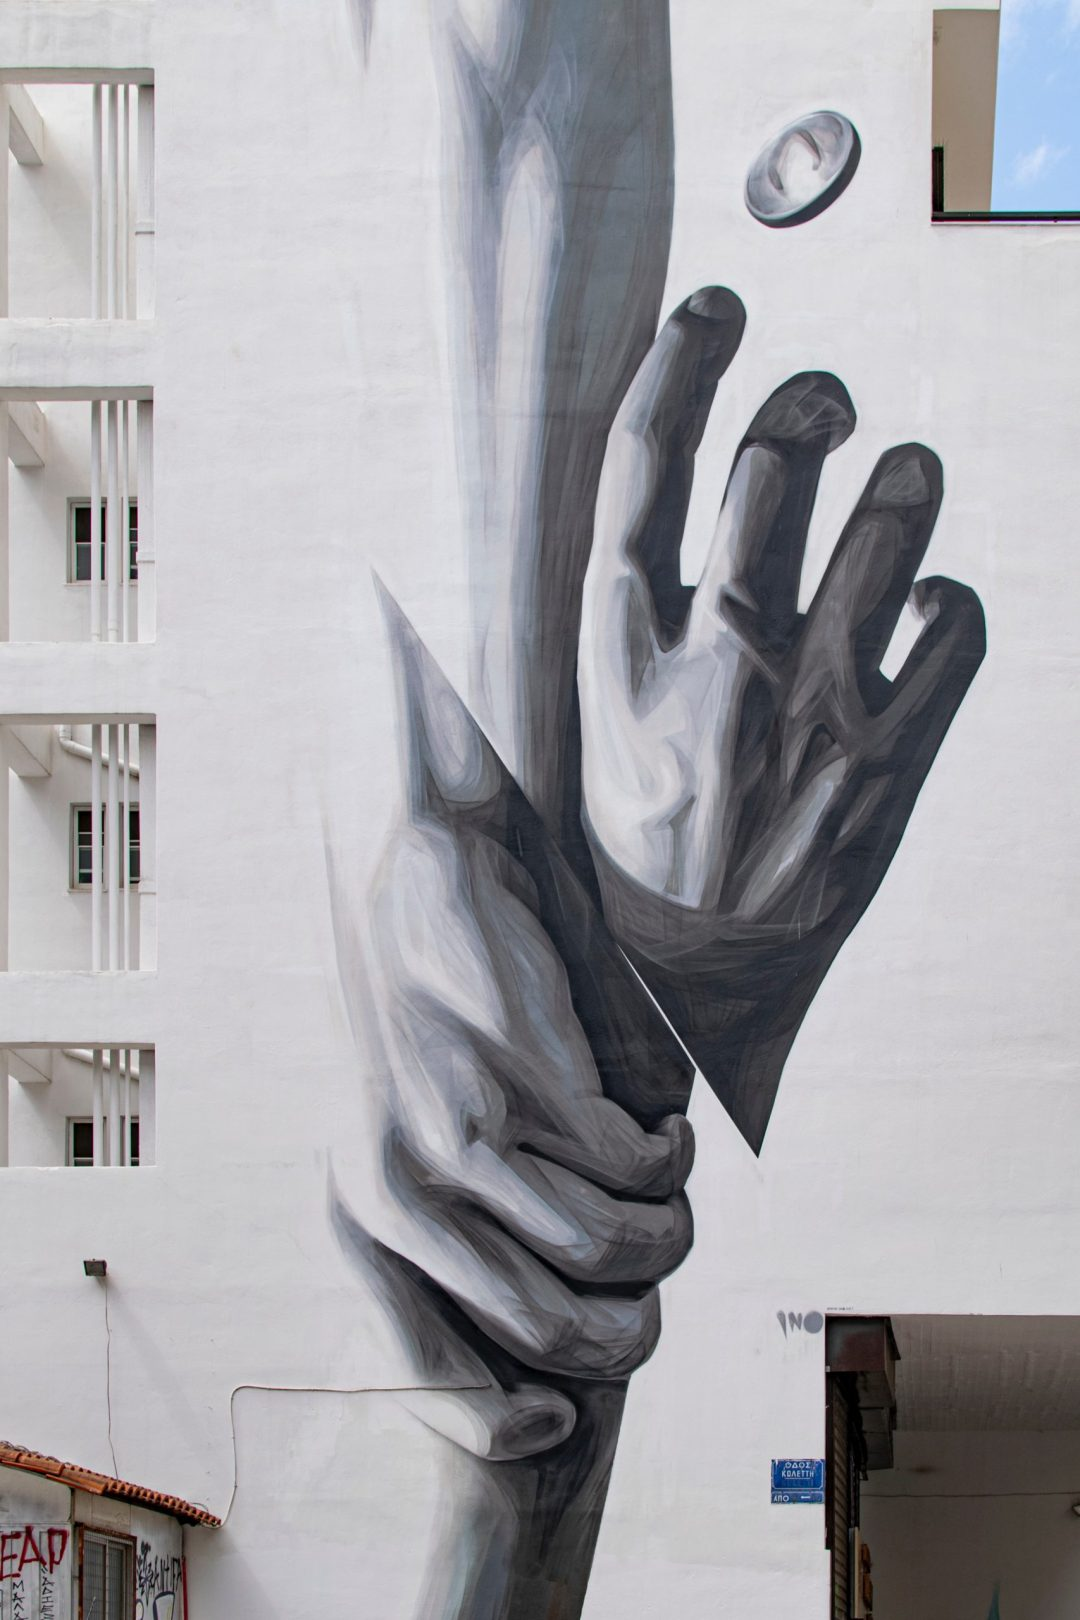 Painting of one hand grasping another's wrist